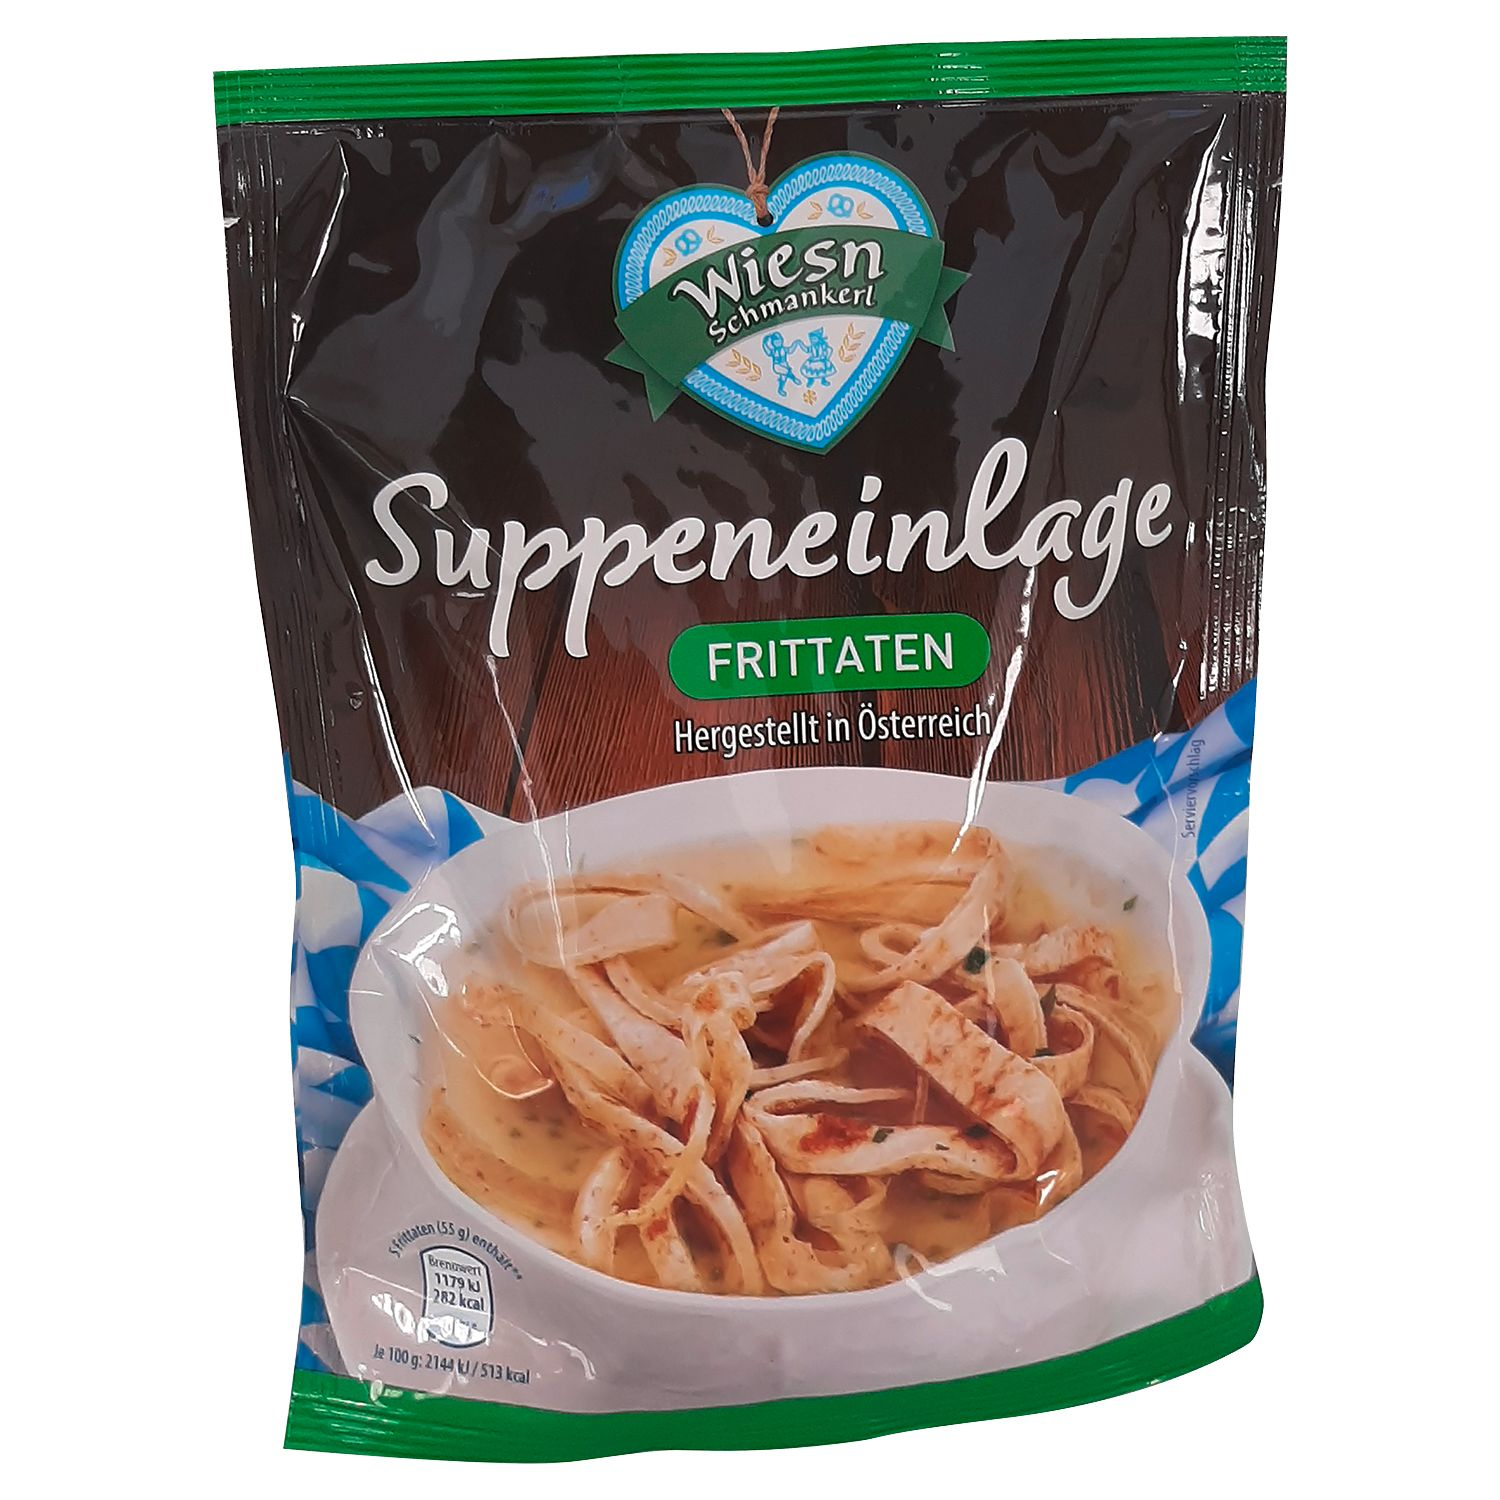 Wiesn Schmankerl Suppeneinlage 120g*